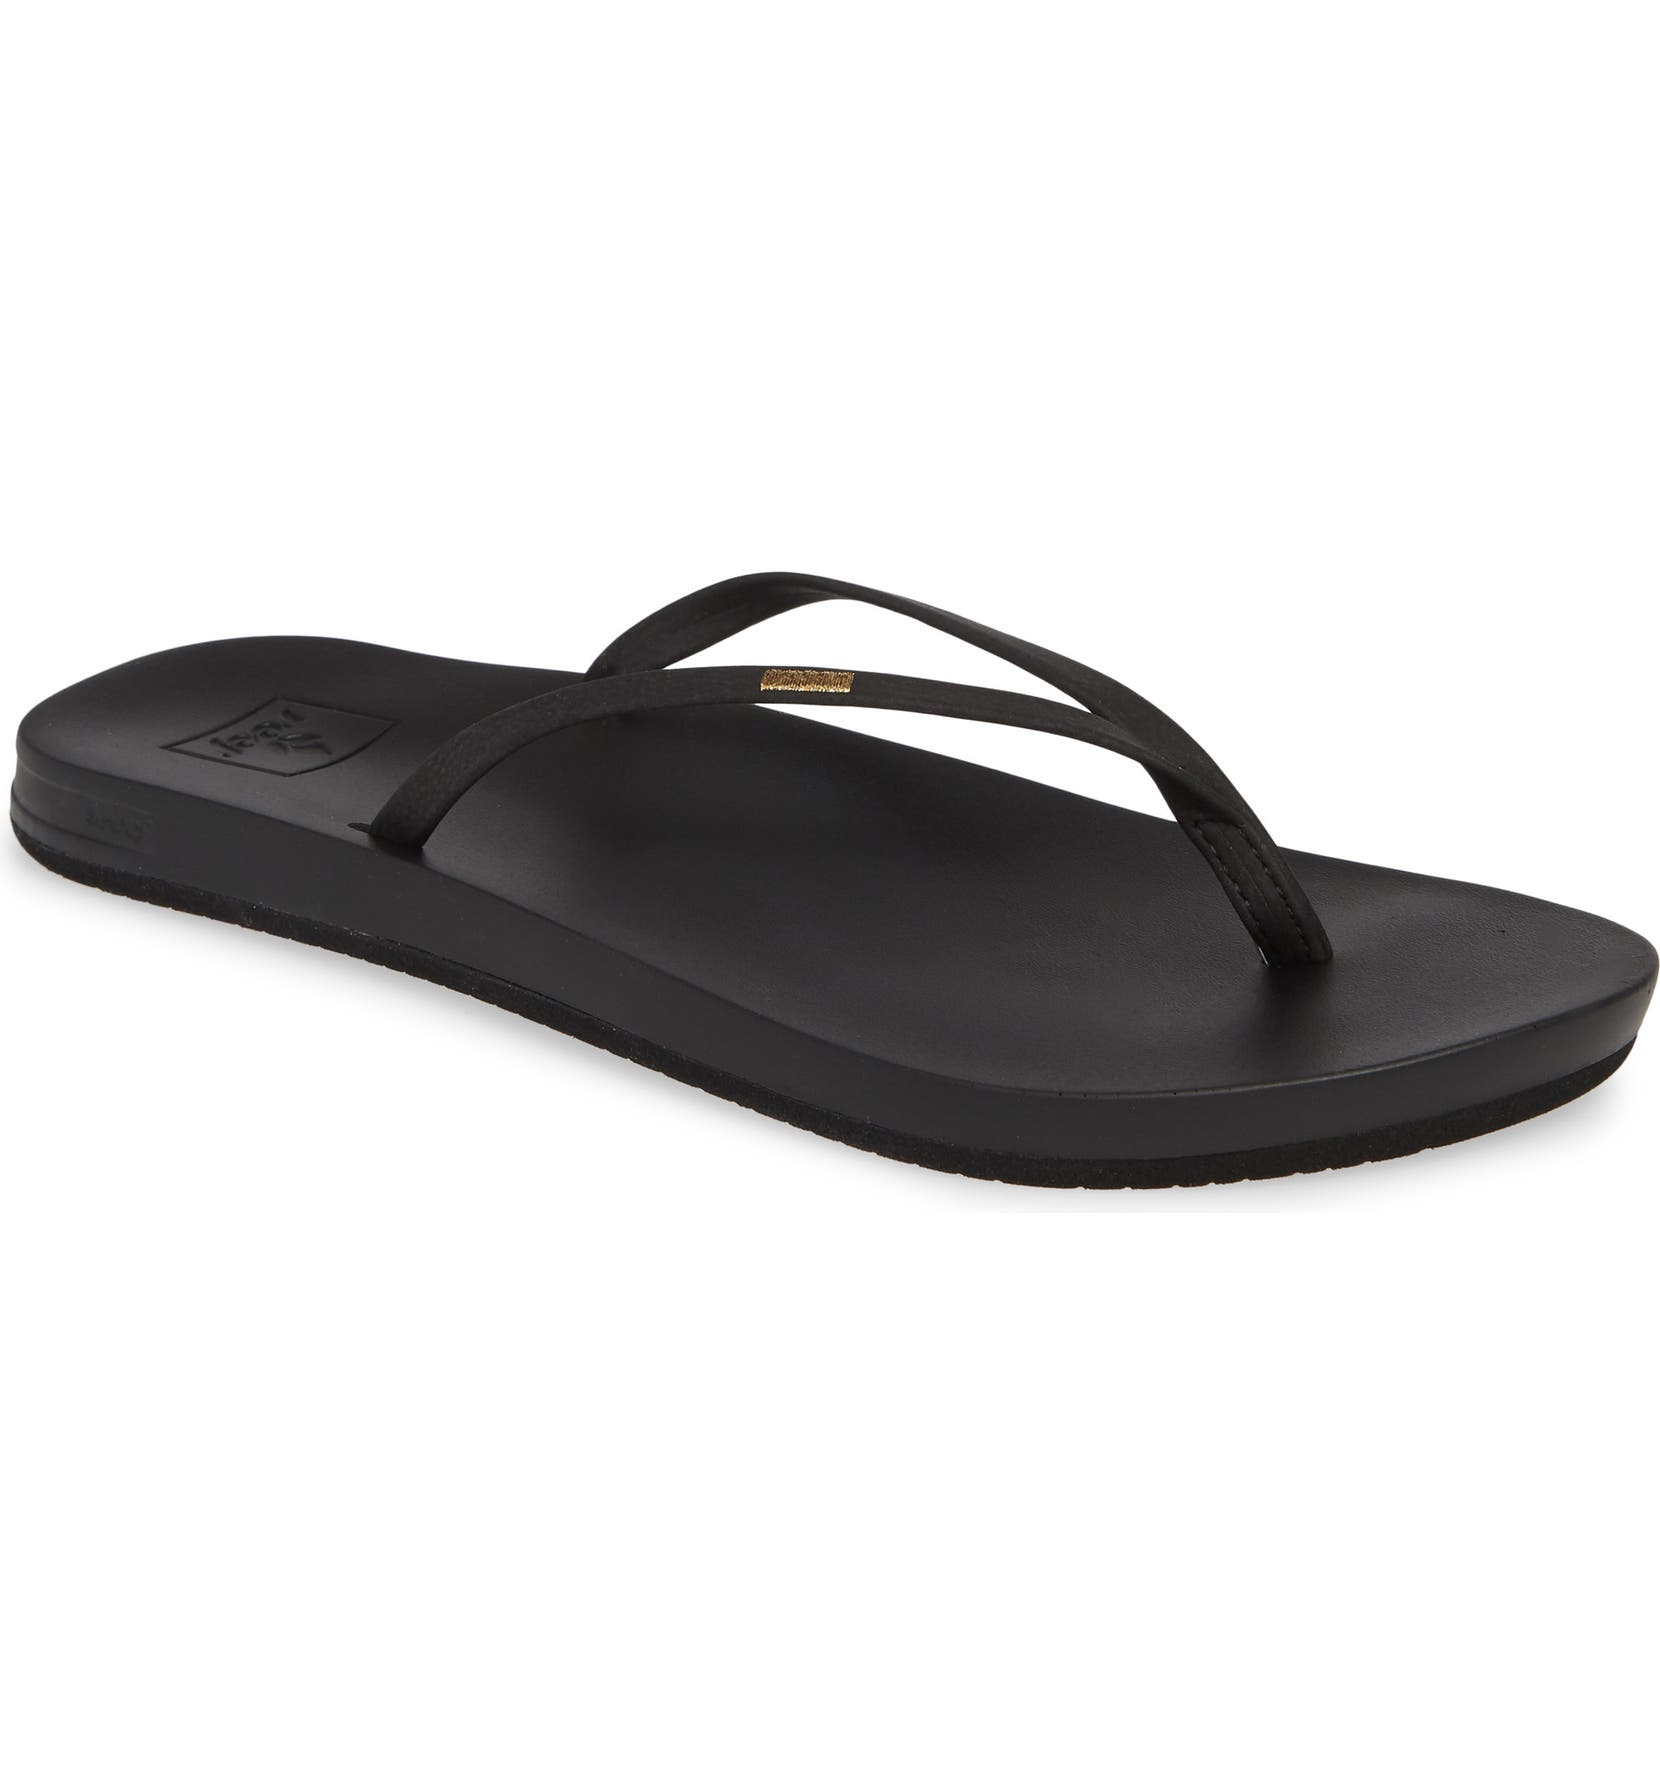 Cushion Bounce Slim Flip Flop